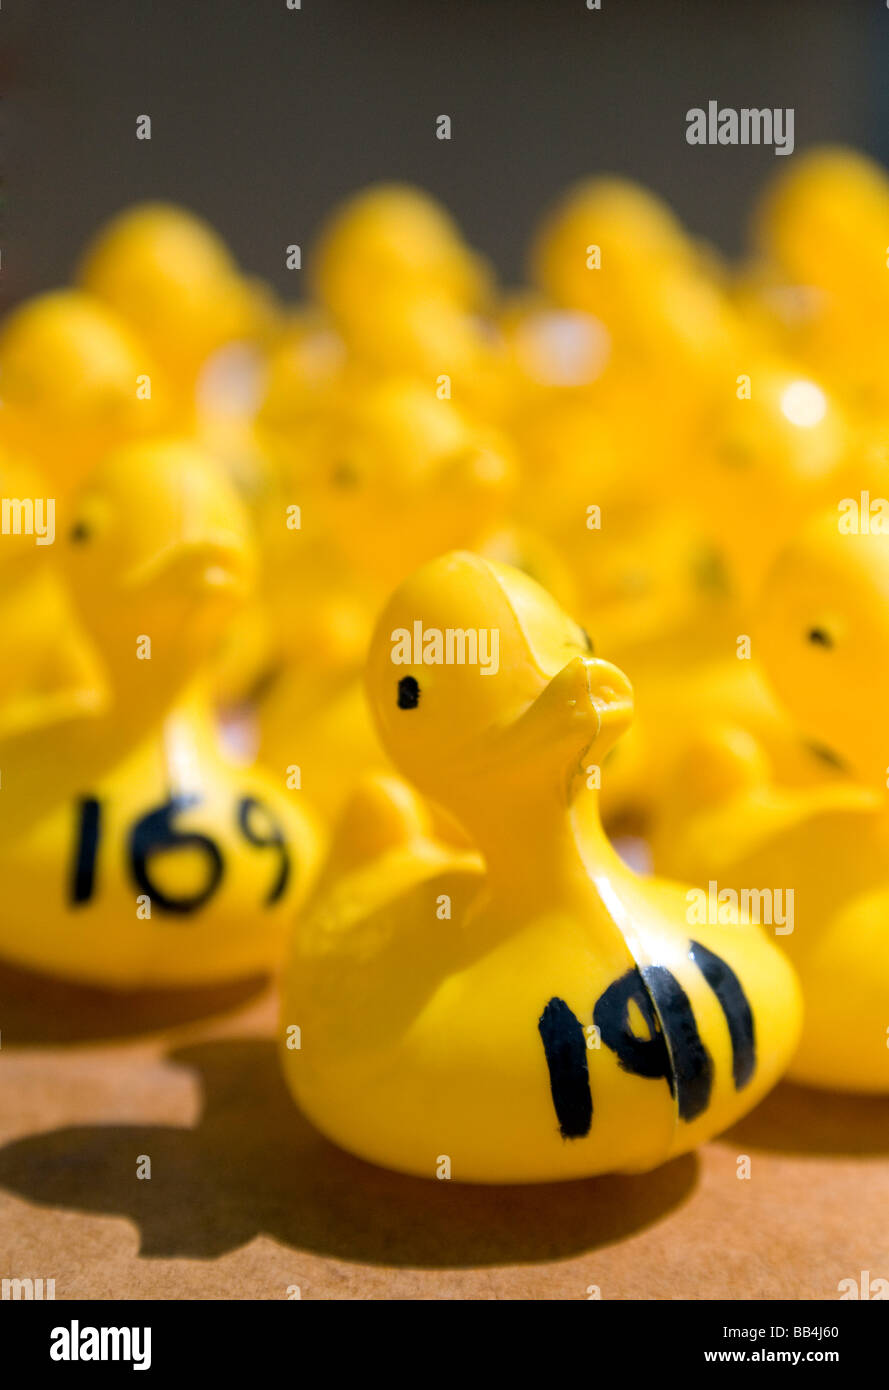 Plastic duck participants in a Charity  duck race at Wallingford, Oxfordshire, UK - Stock Image